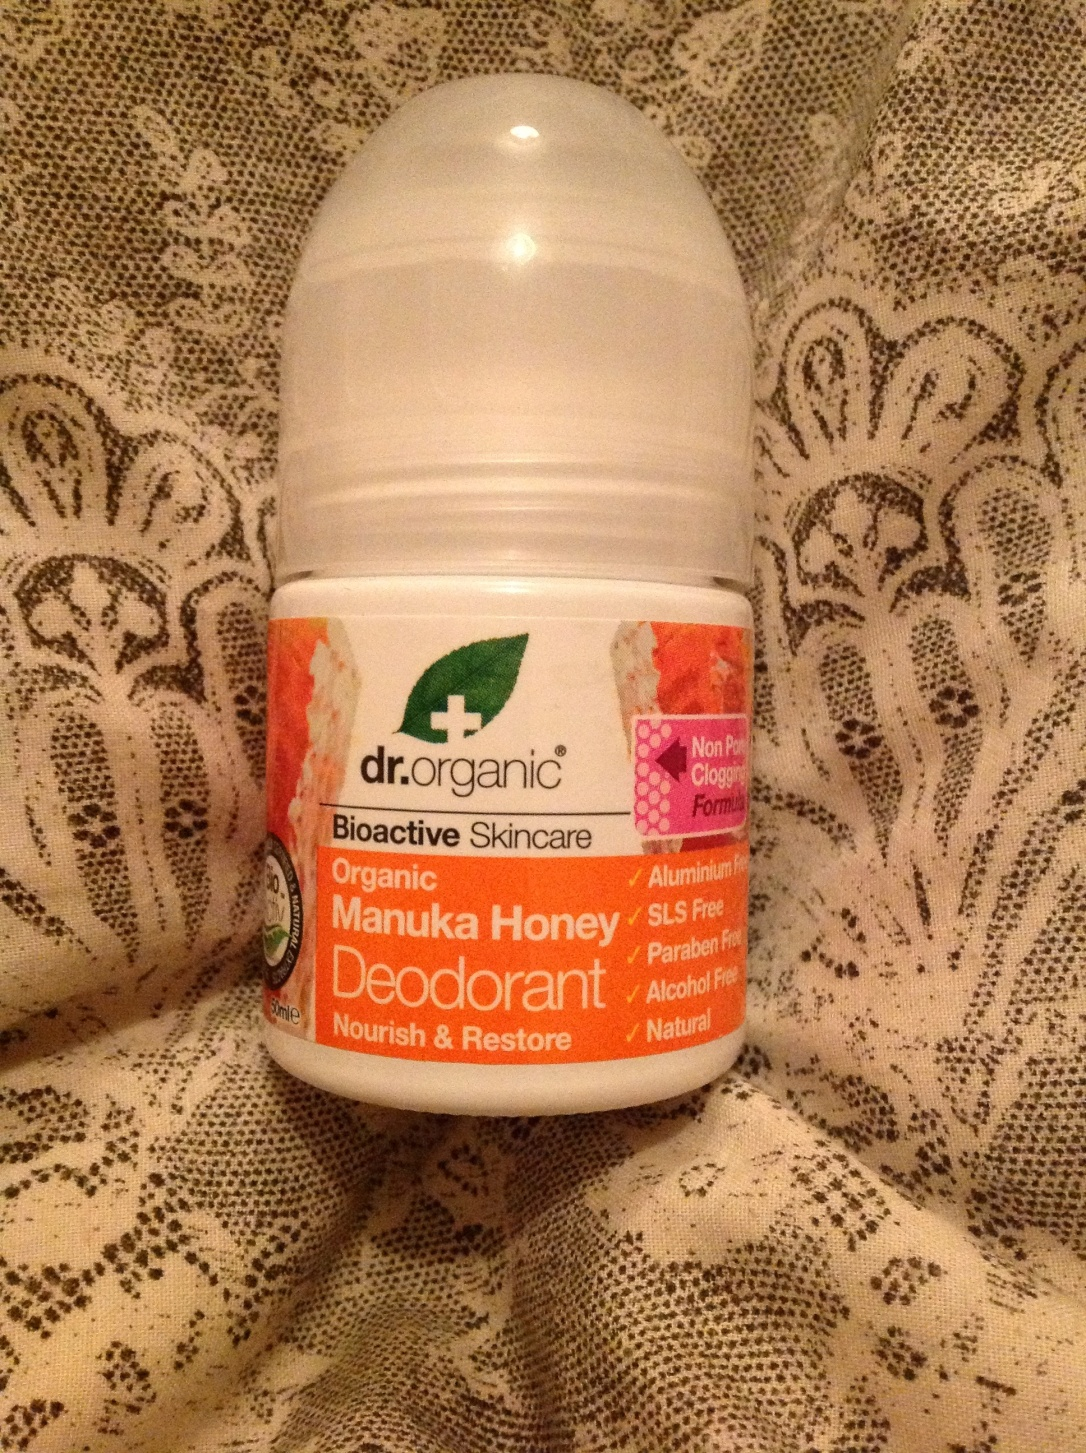 Dr organic manuka honey deodorant